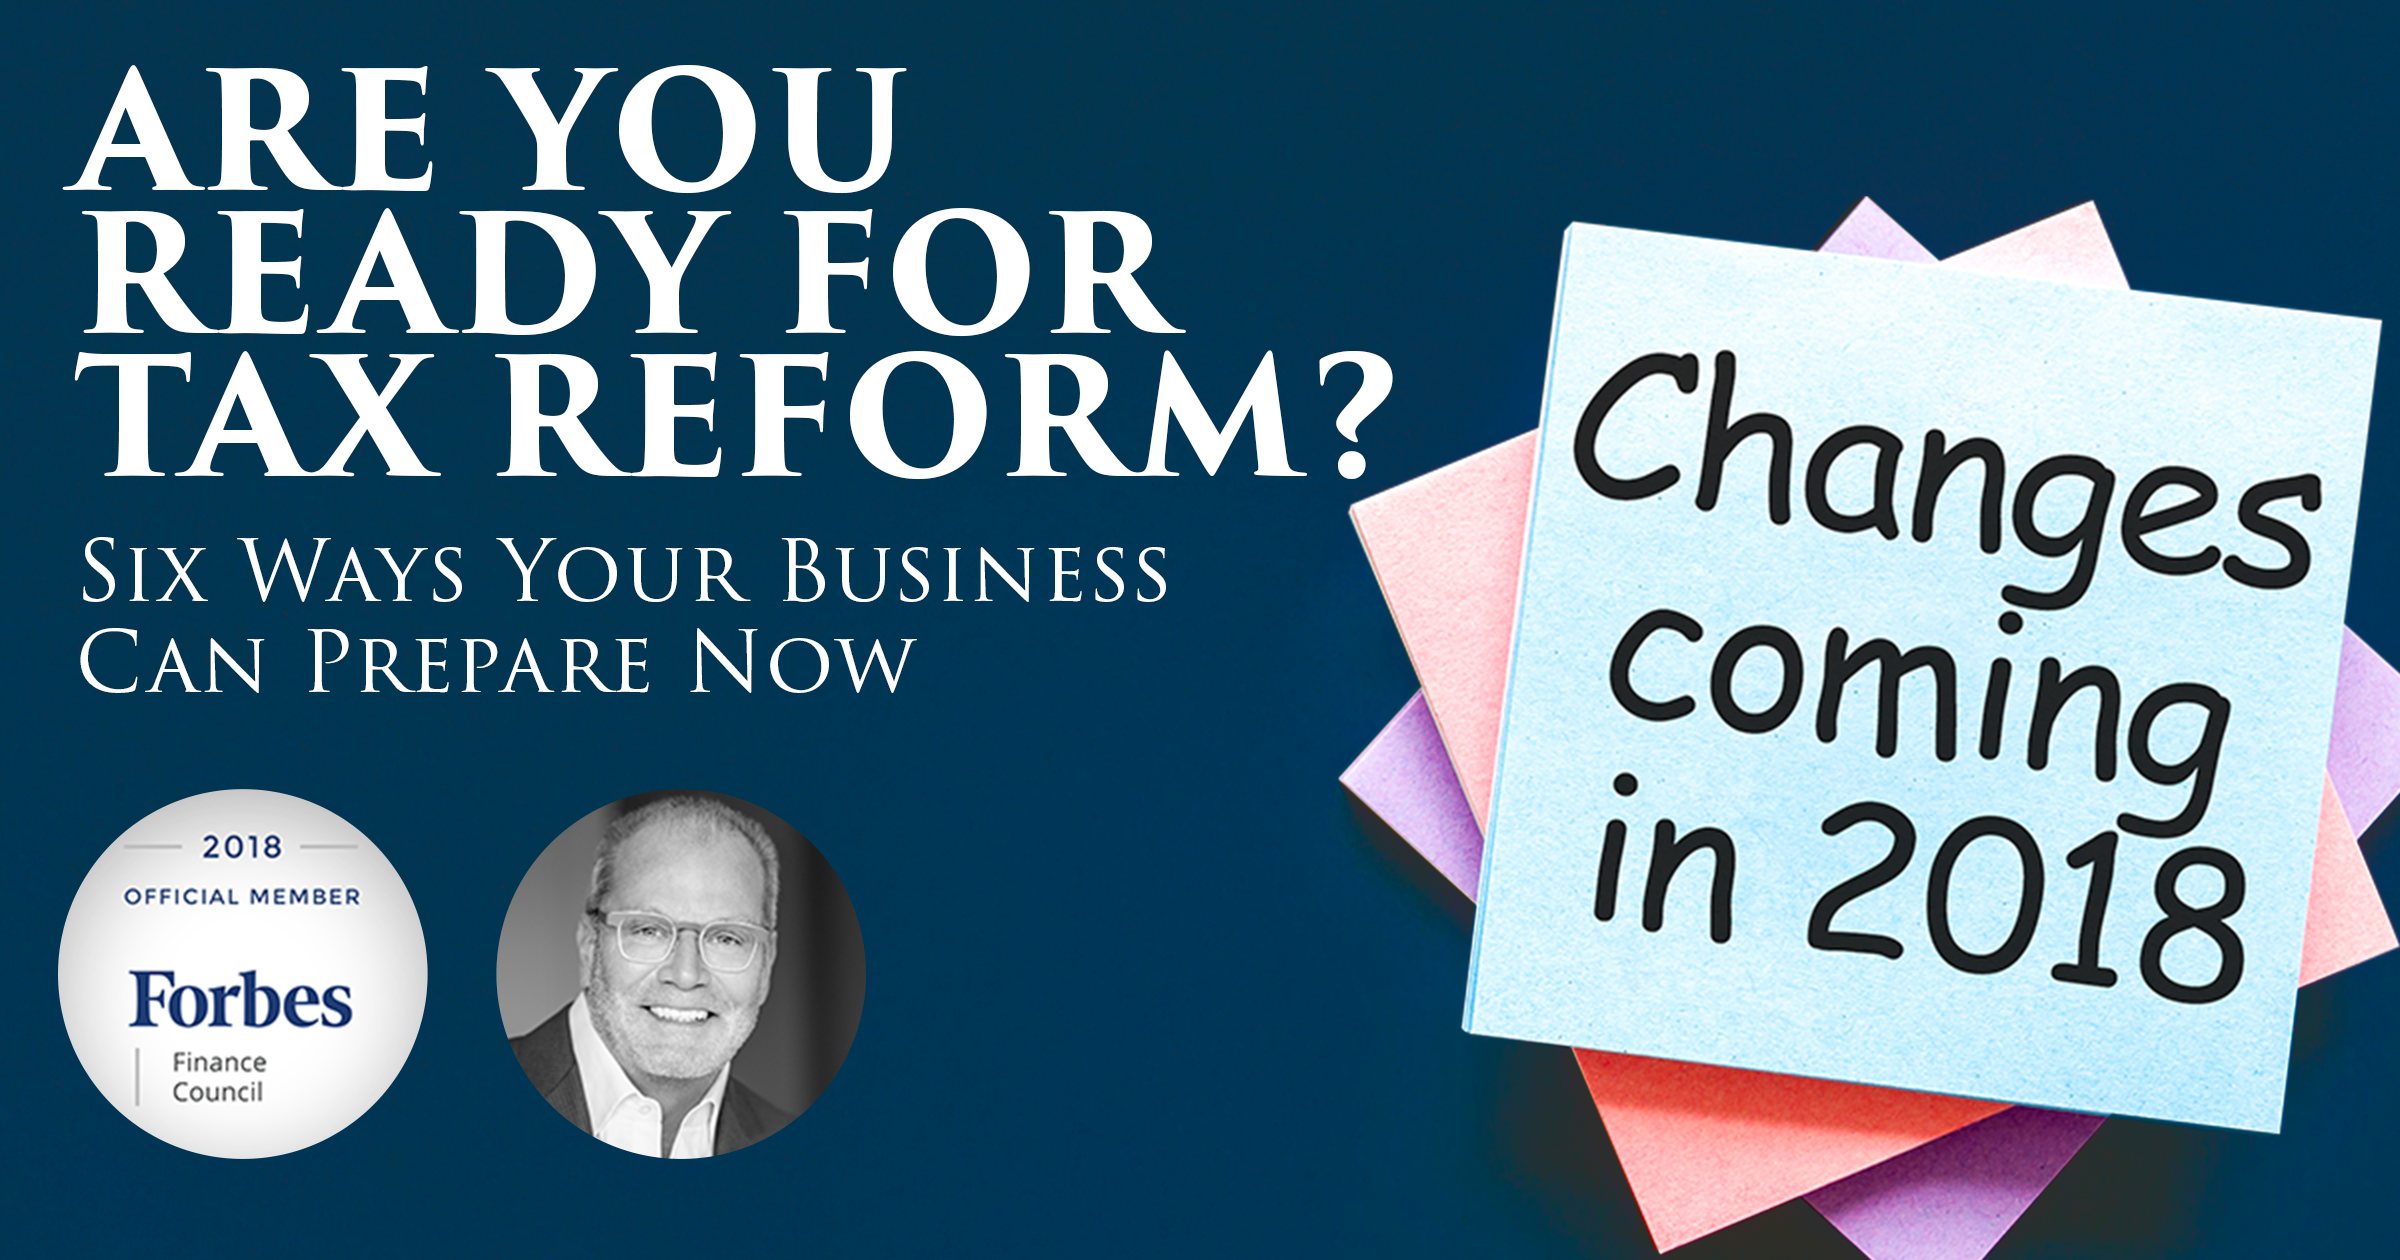 Are You Ready for Tax Reform?  Six Ways Your Business Can Prepare Now